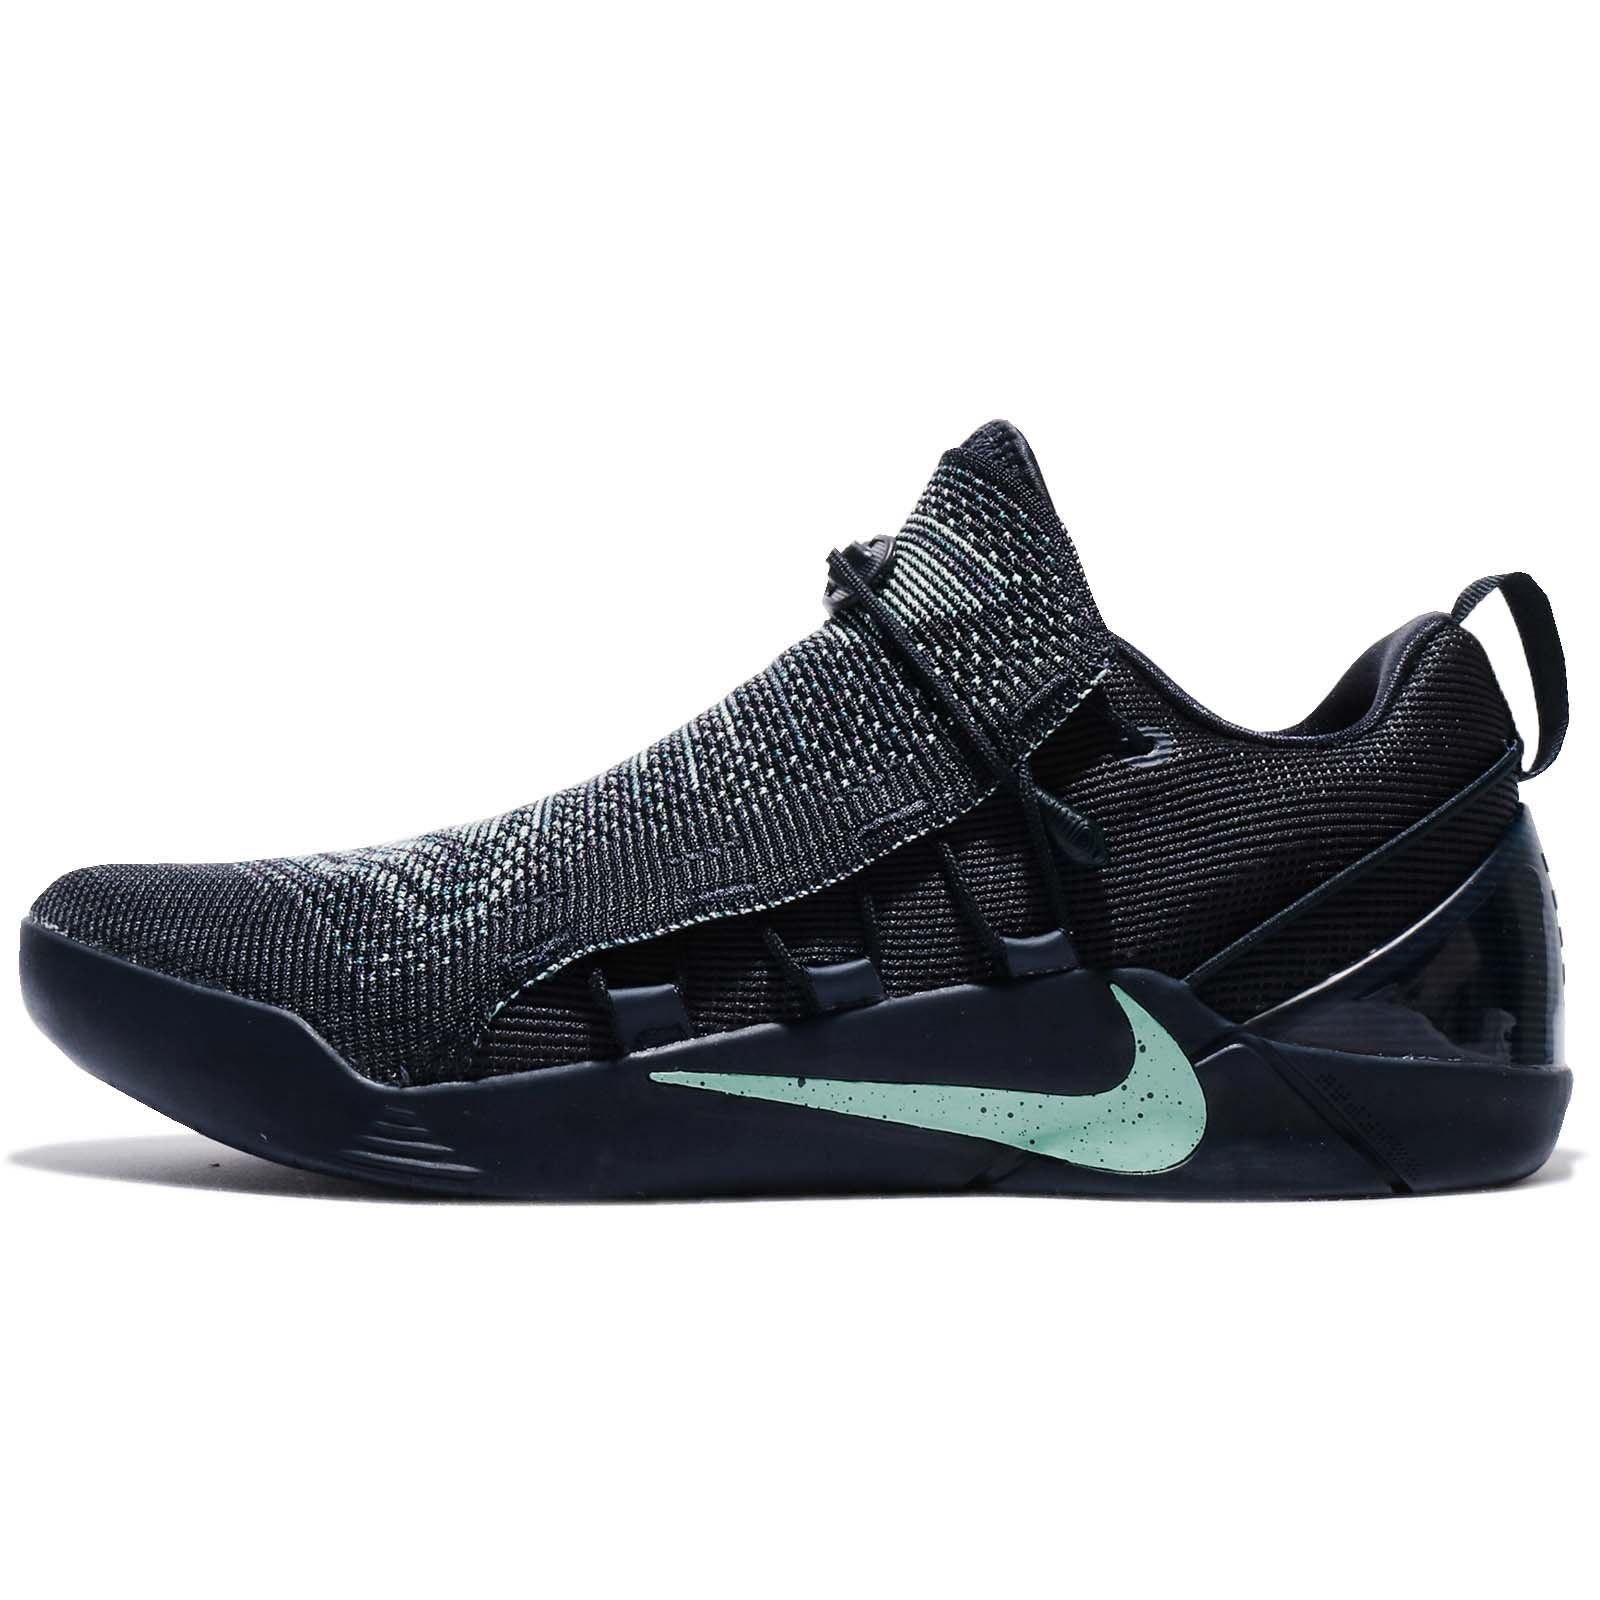 Nike Men's Kobe A.D. NXT AD, Mambacurial FC Barcelona College Navy Igloo, 9.5 M US